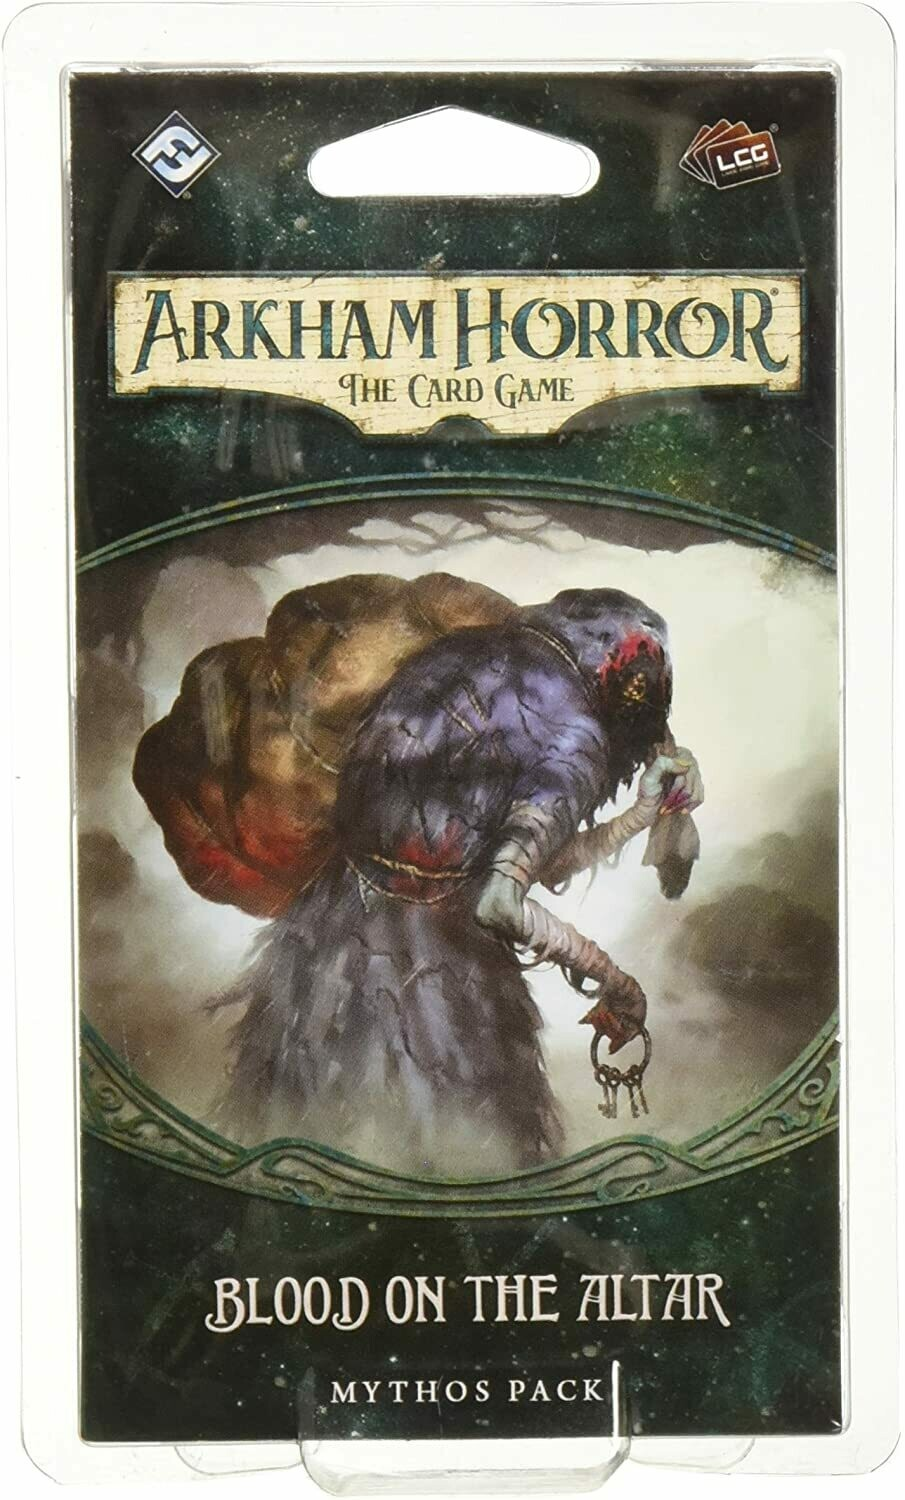 Arkham Horror: The Card Game - Blood on the Alter Mythos Pack